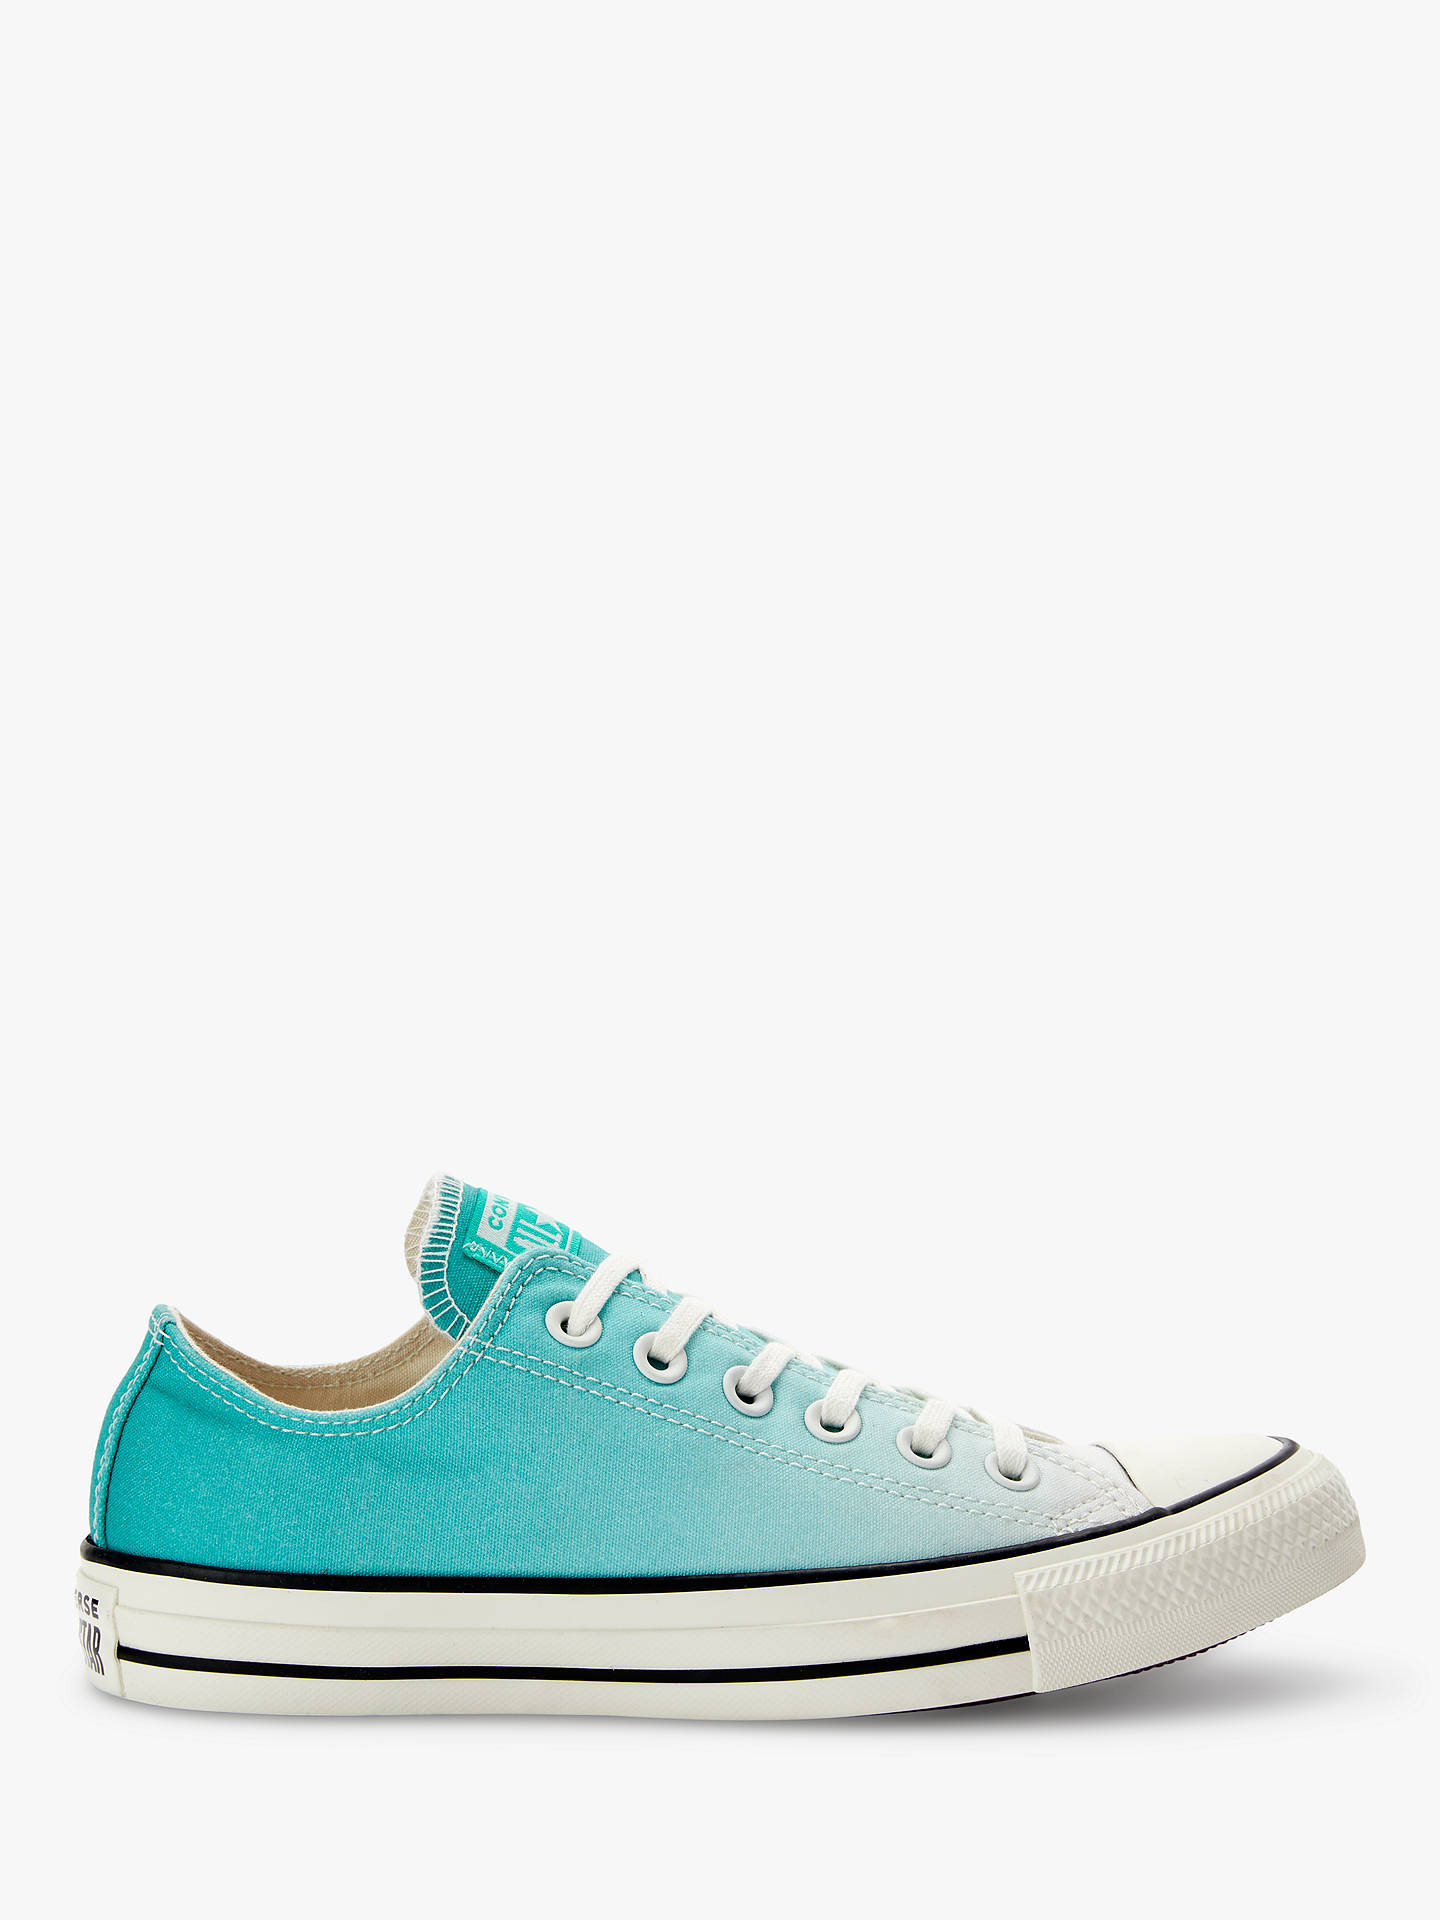 8076391253dd Converse Chuck Taylor All Star Ox Ombre Effect Trainers at John ...